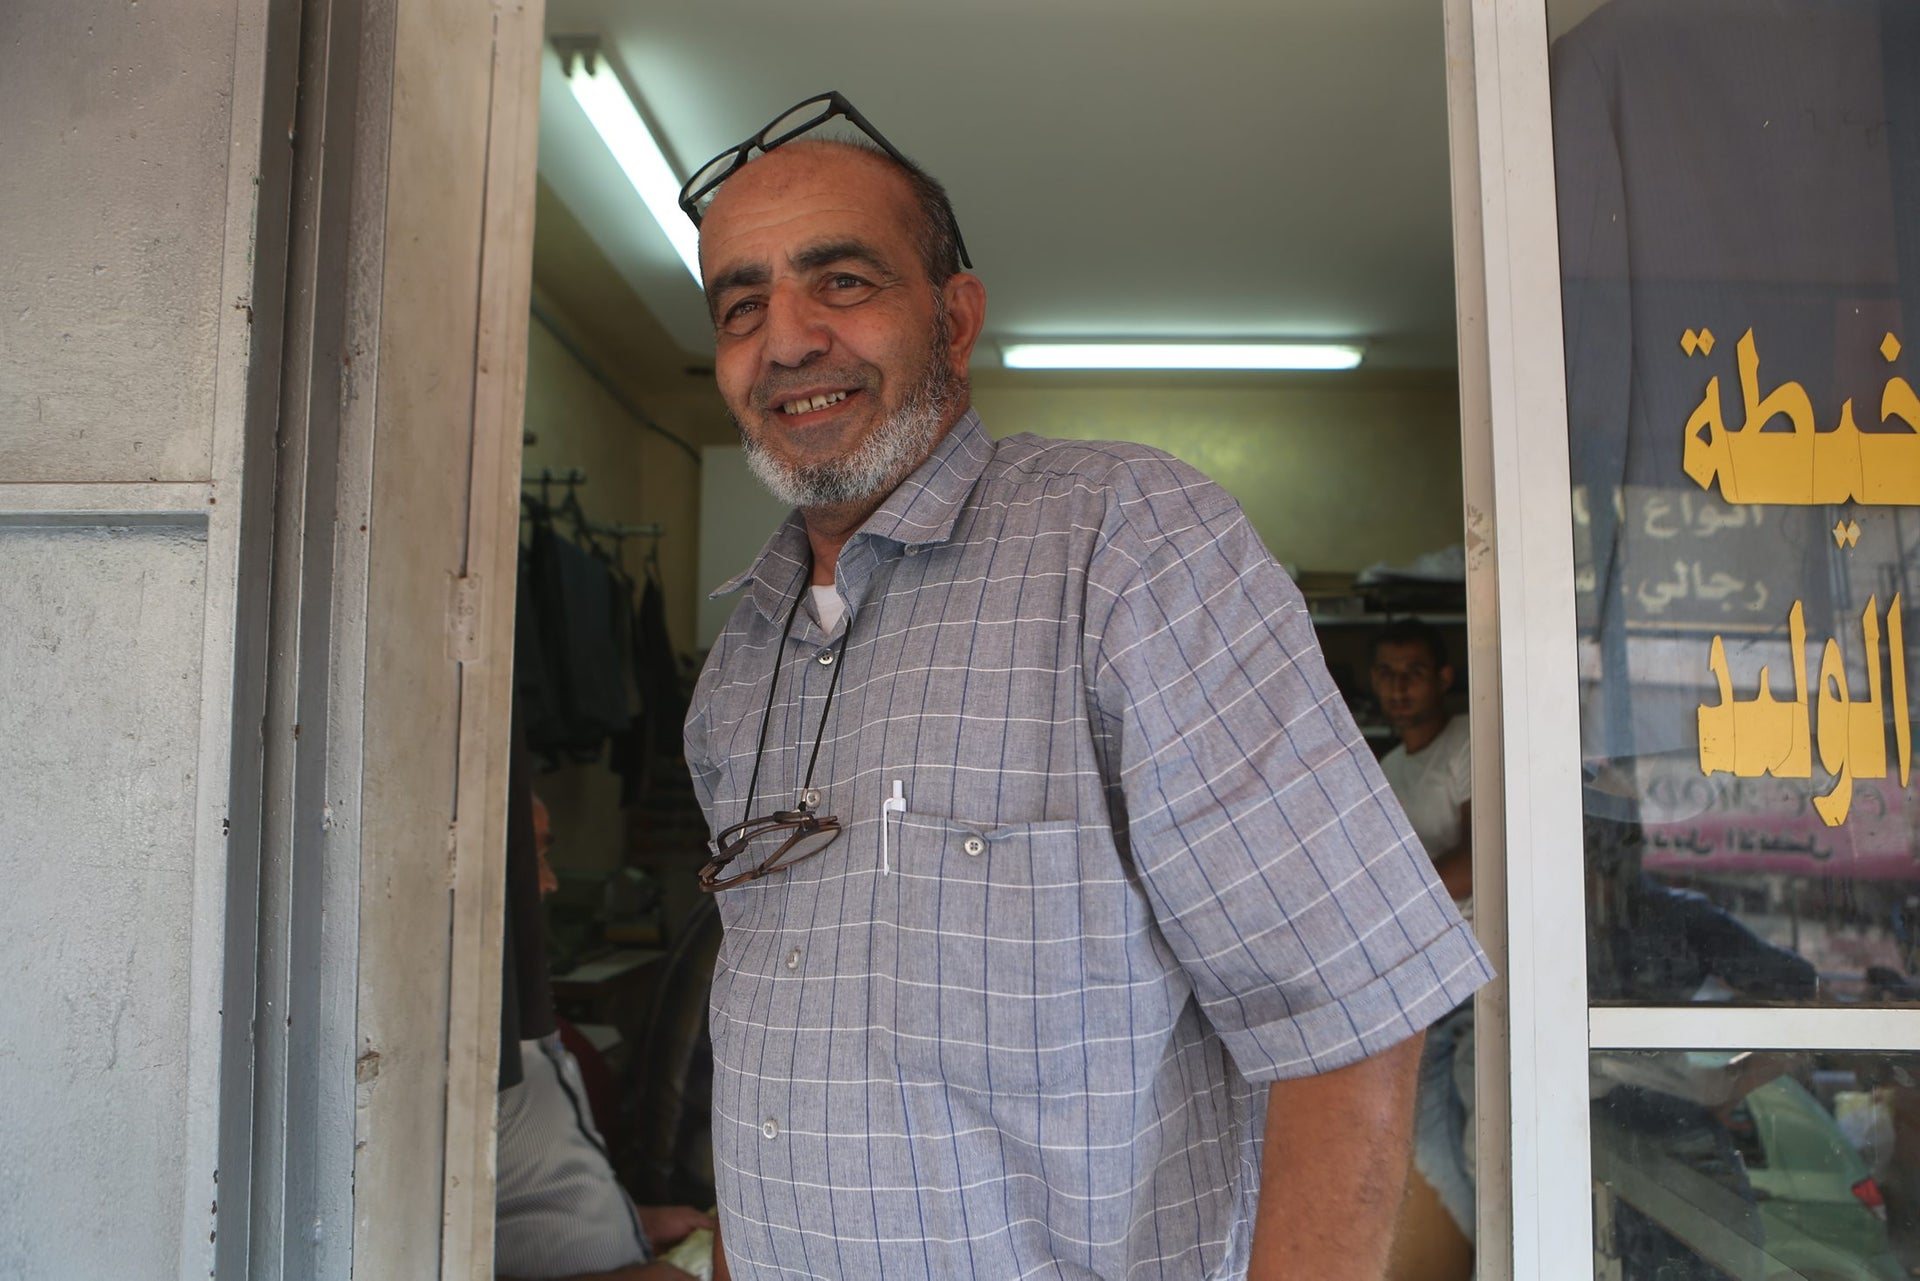 Gazi Kabha regales passersby with tales of life in Barta'a before the Six-Day War.